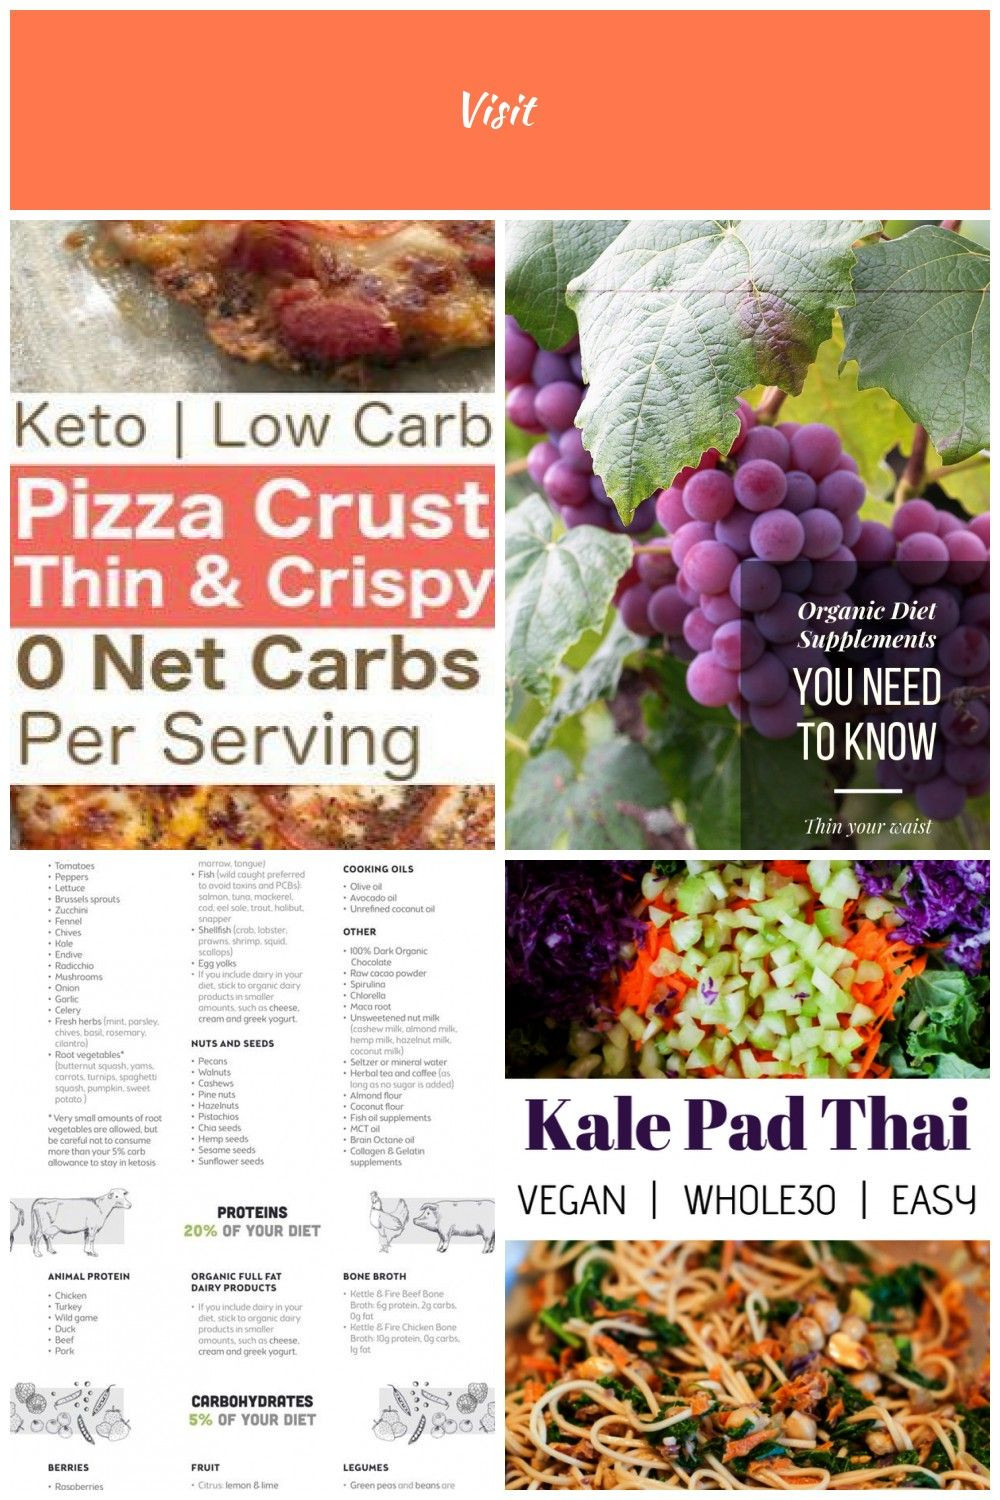 Low Carb Diet Meal Plan Philippines  Diet Prada Instagram across No Carb Protein Meals their